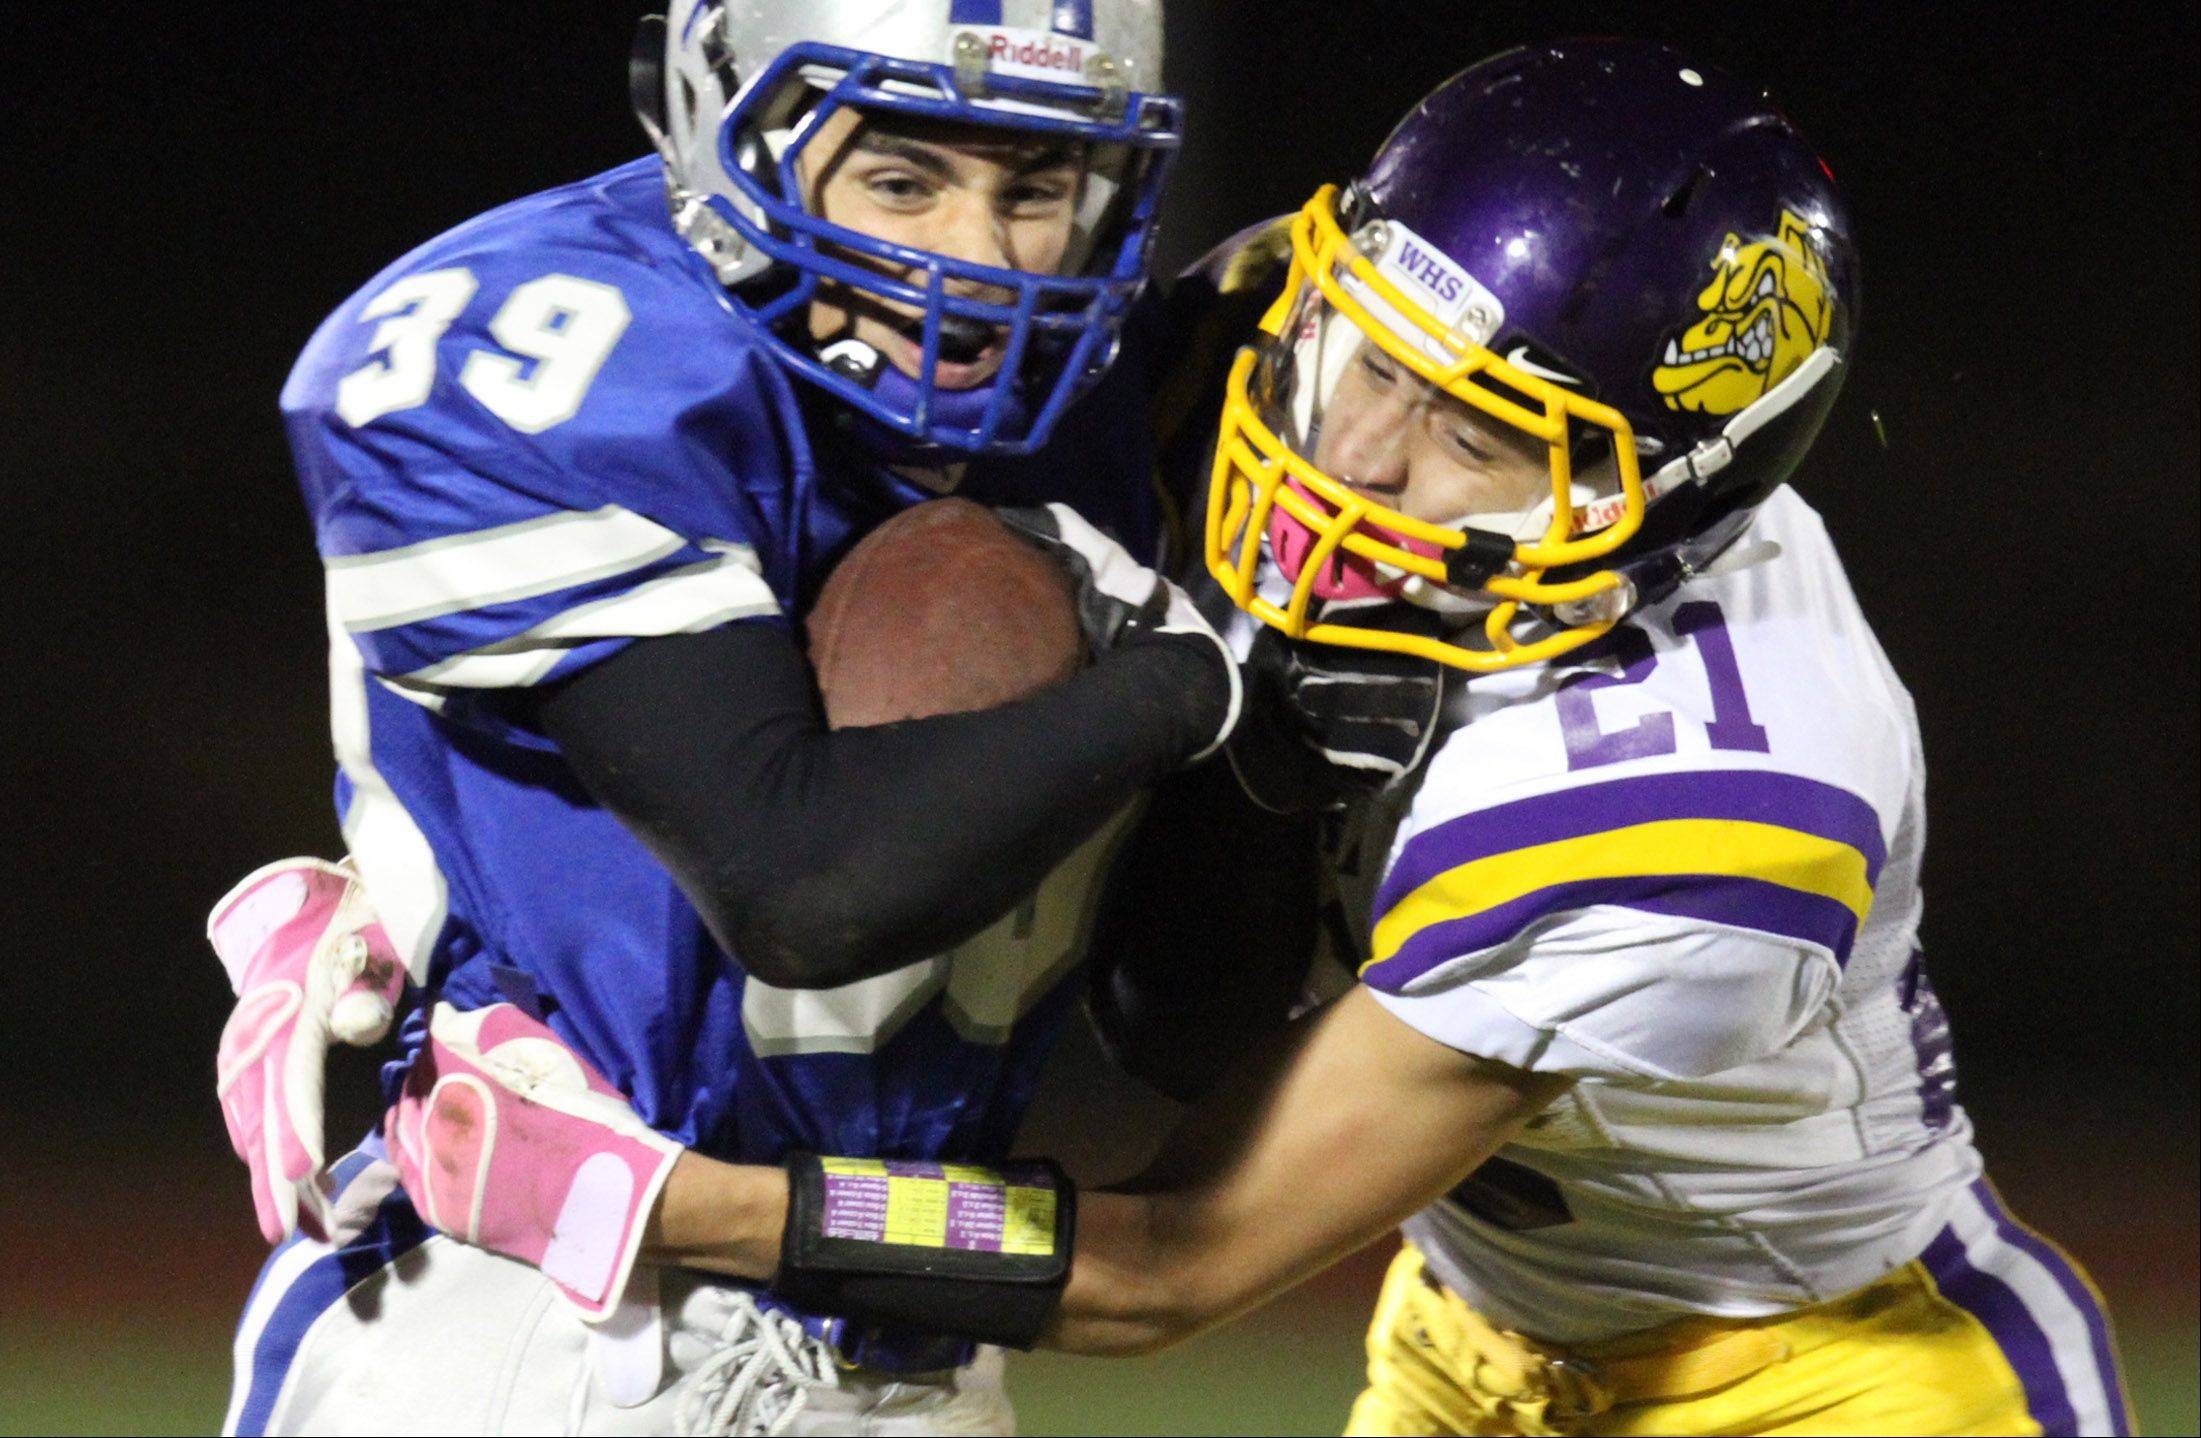 Vernon Hills' Sam Maloof is pulled down by Wauconda's Chris Bednarski at Vernon Hills on Friday.